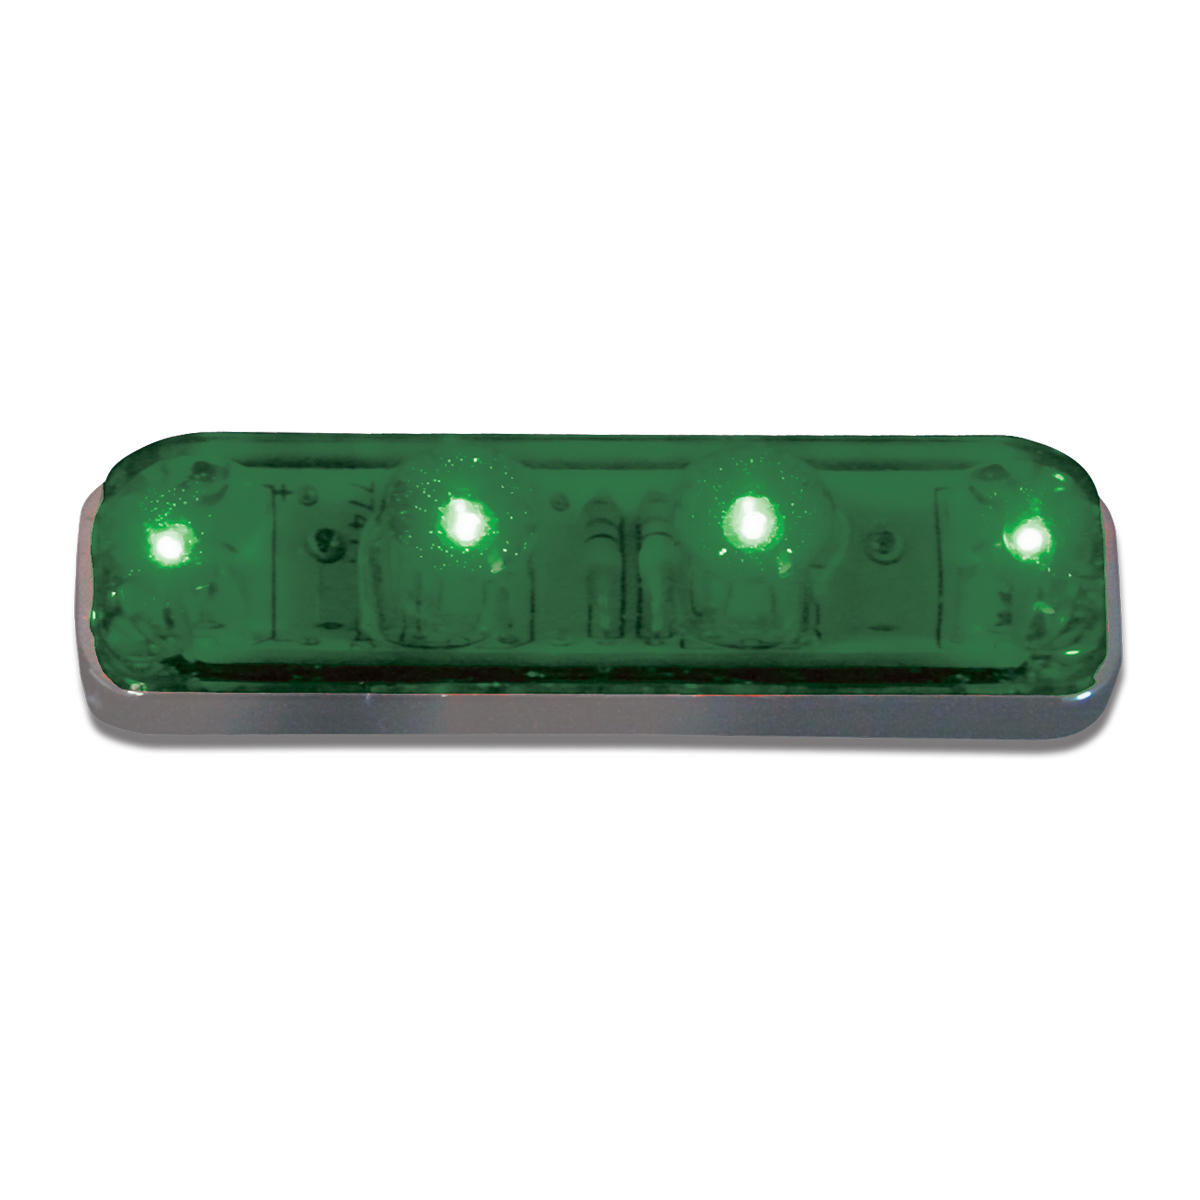 77142 Small Thin Lin Surface Mount LED Light in Green/Green